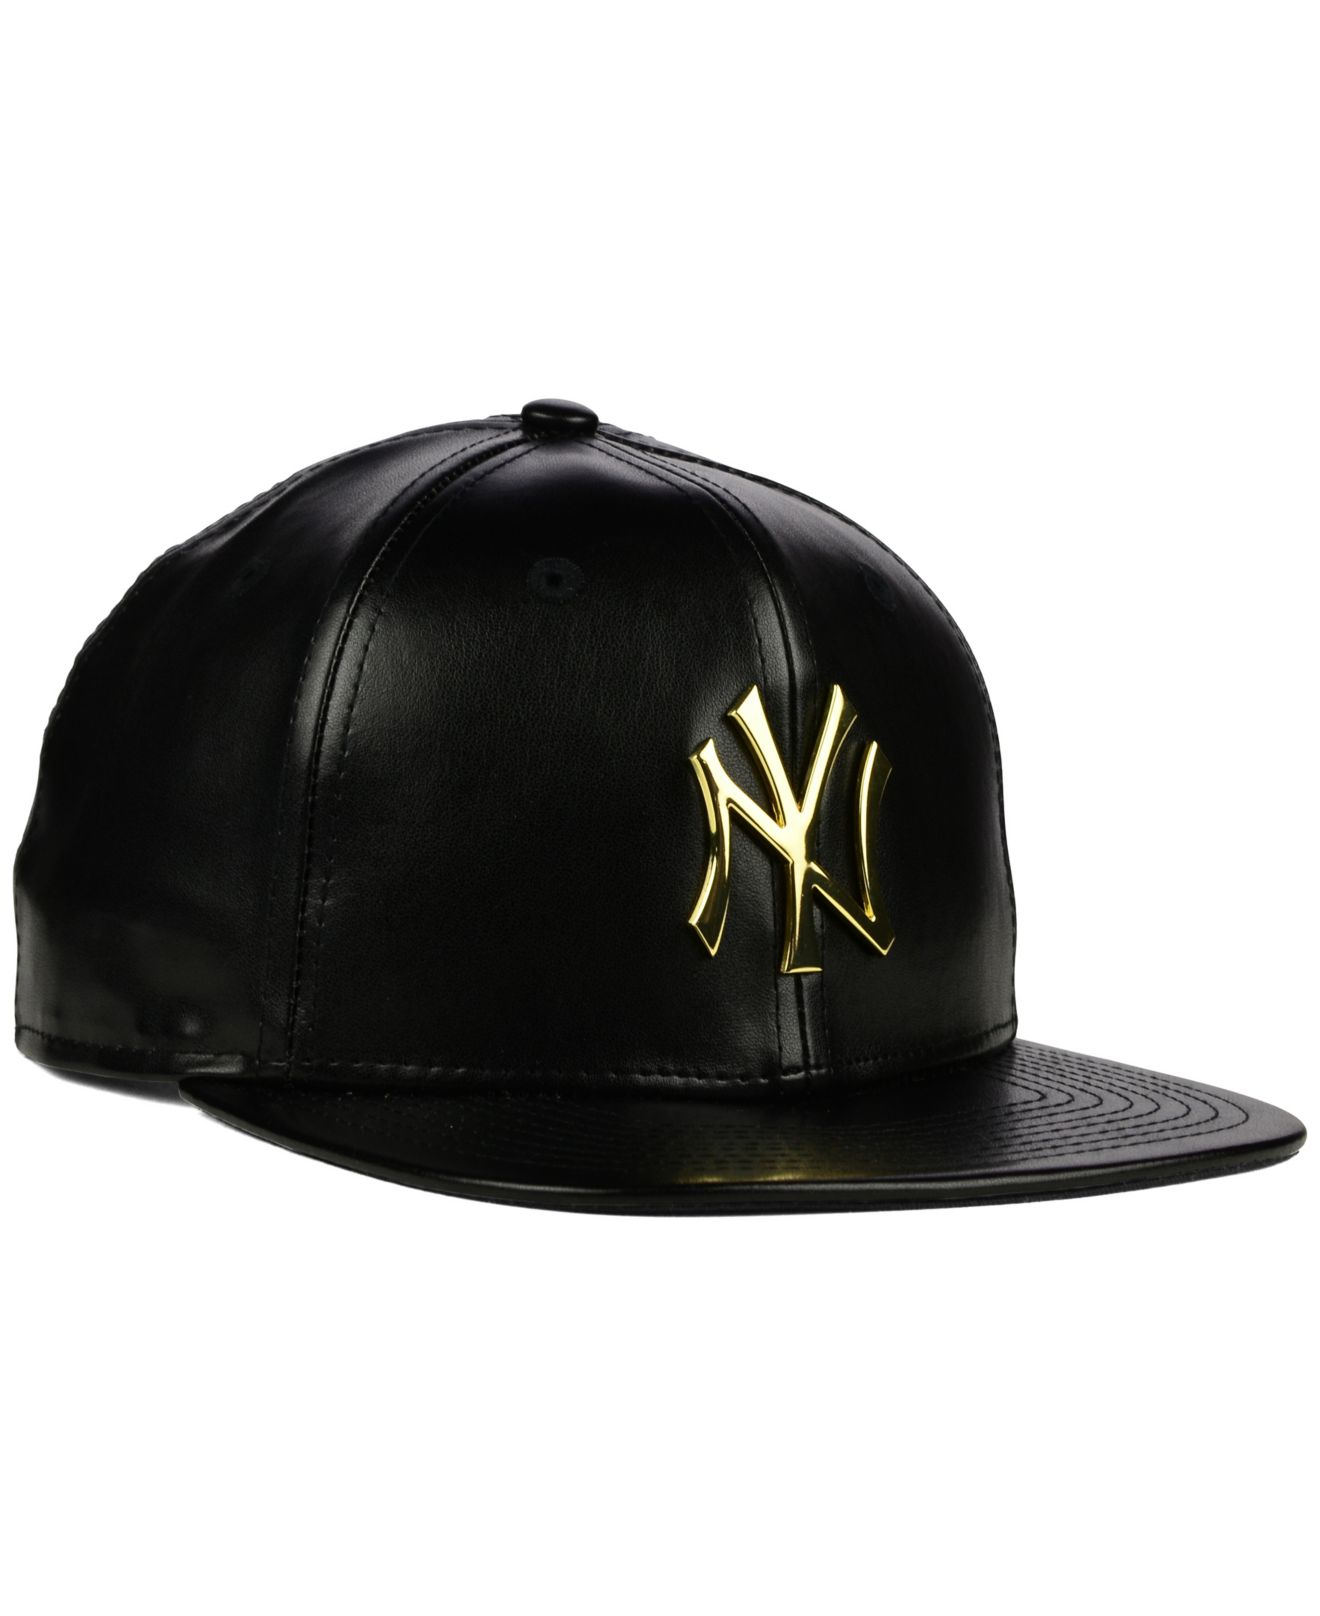 2d3c844d8a991 KTZ New York Yankees Faux Leather 9fifty Strapback Cap in Black - Lyst